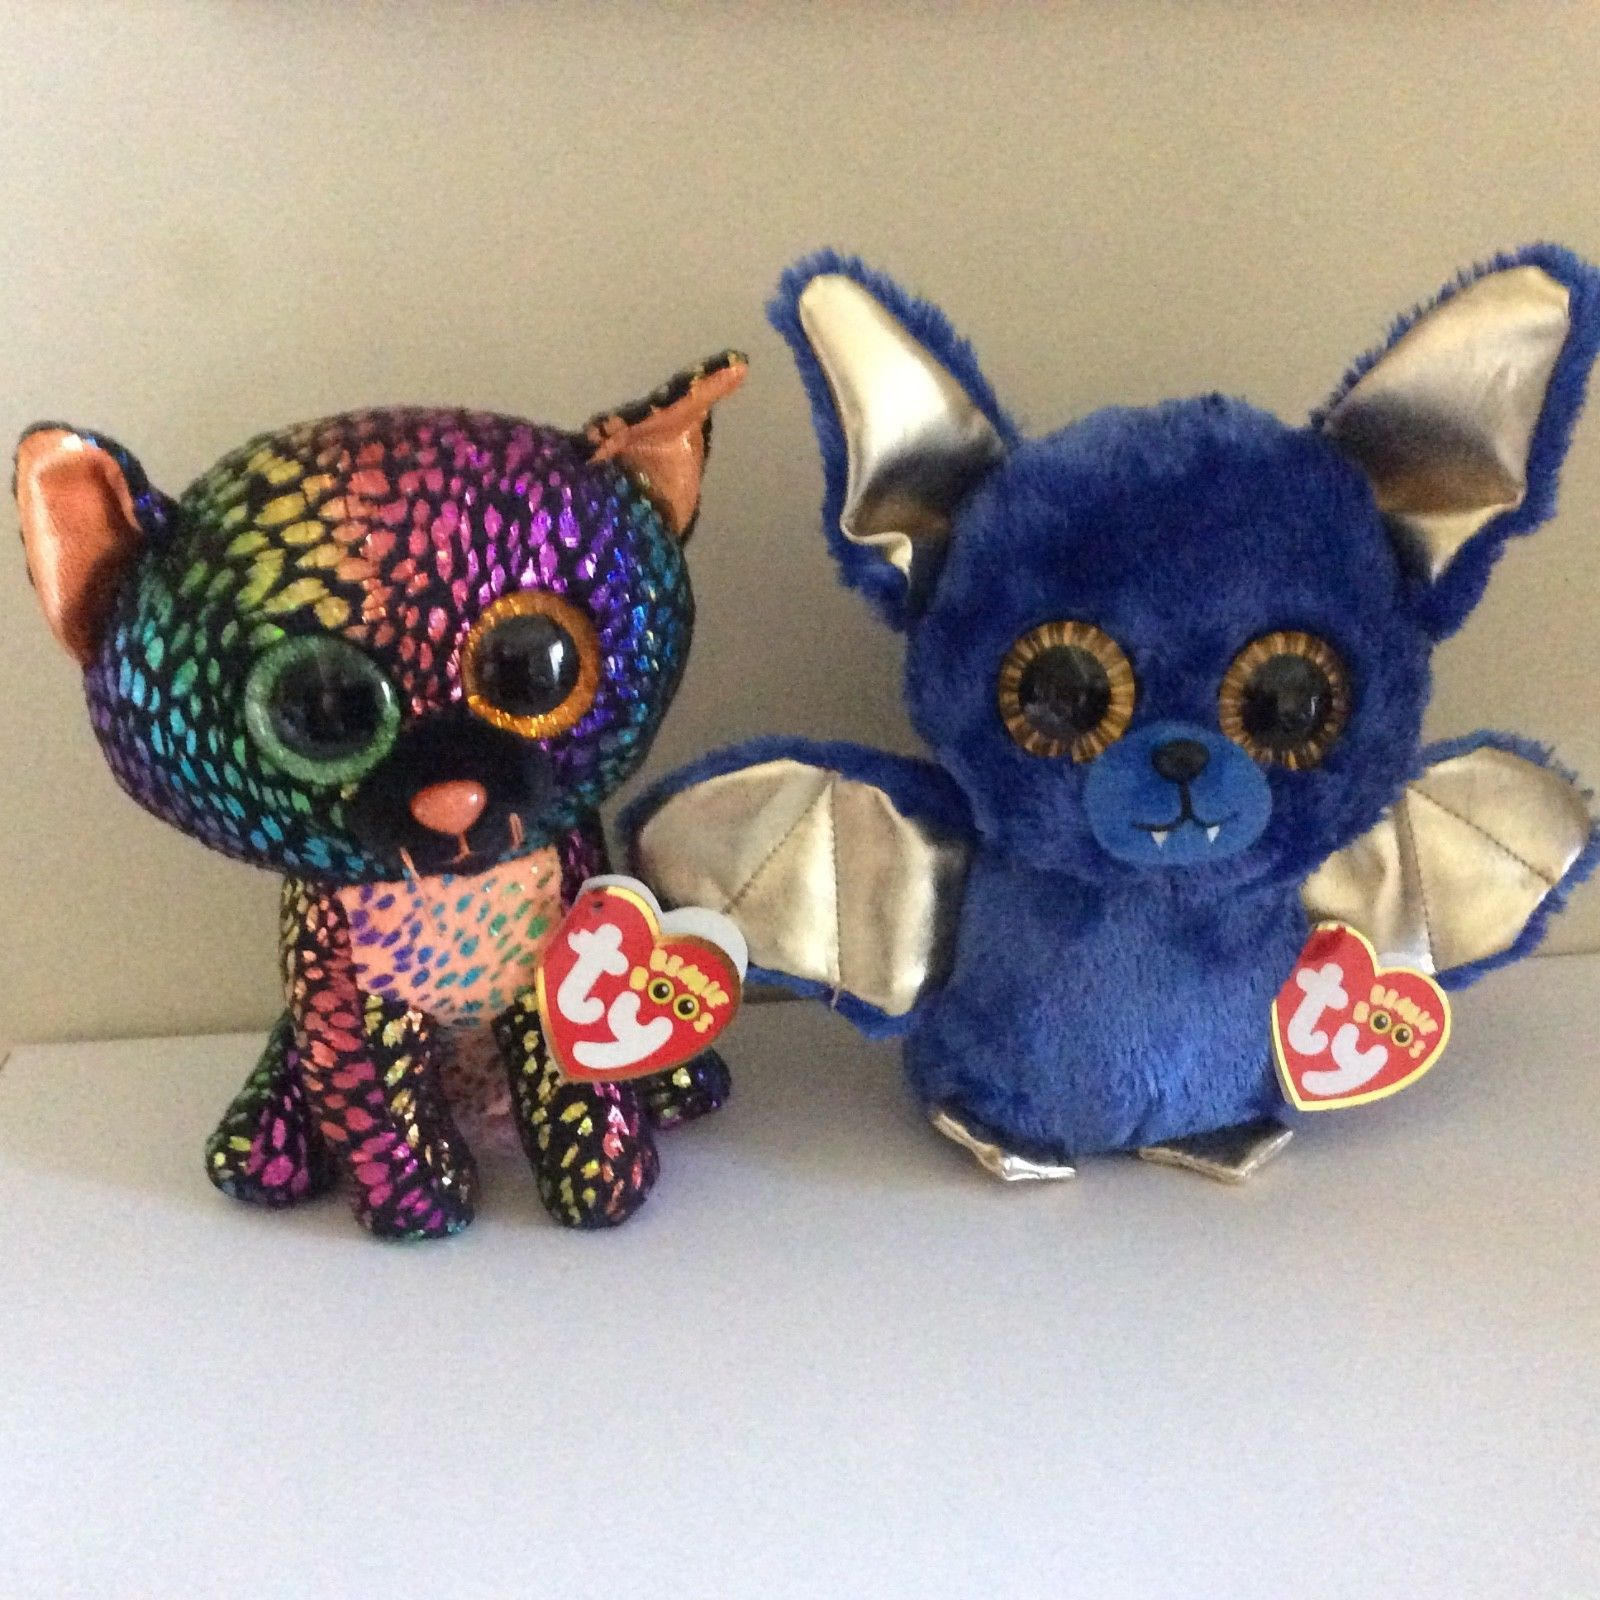 3d0e738967e Current 438  Ty Beanie Boos Spellbound The Cat And Ozzy The Bat Halloween  Exclusives 6 Mwmts -  BUY IT NOW ONLY   24.99 on  eBay  current  beanie ...